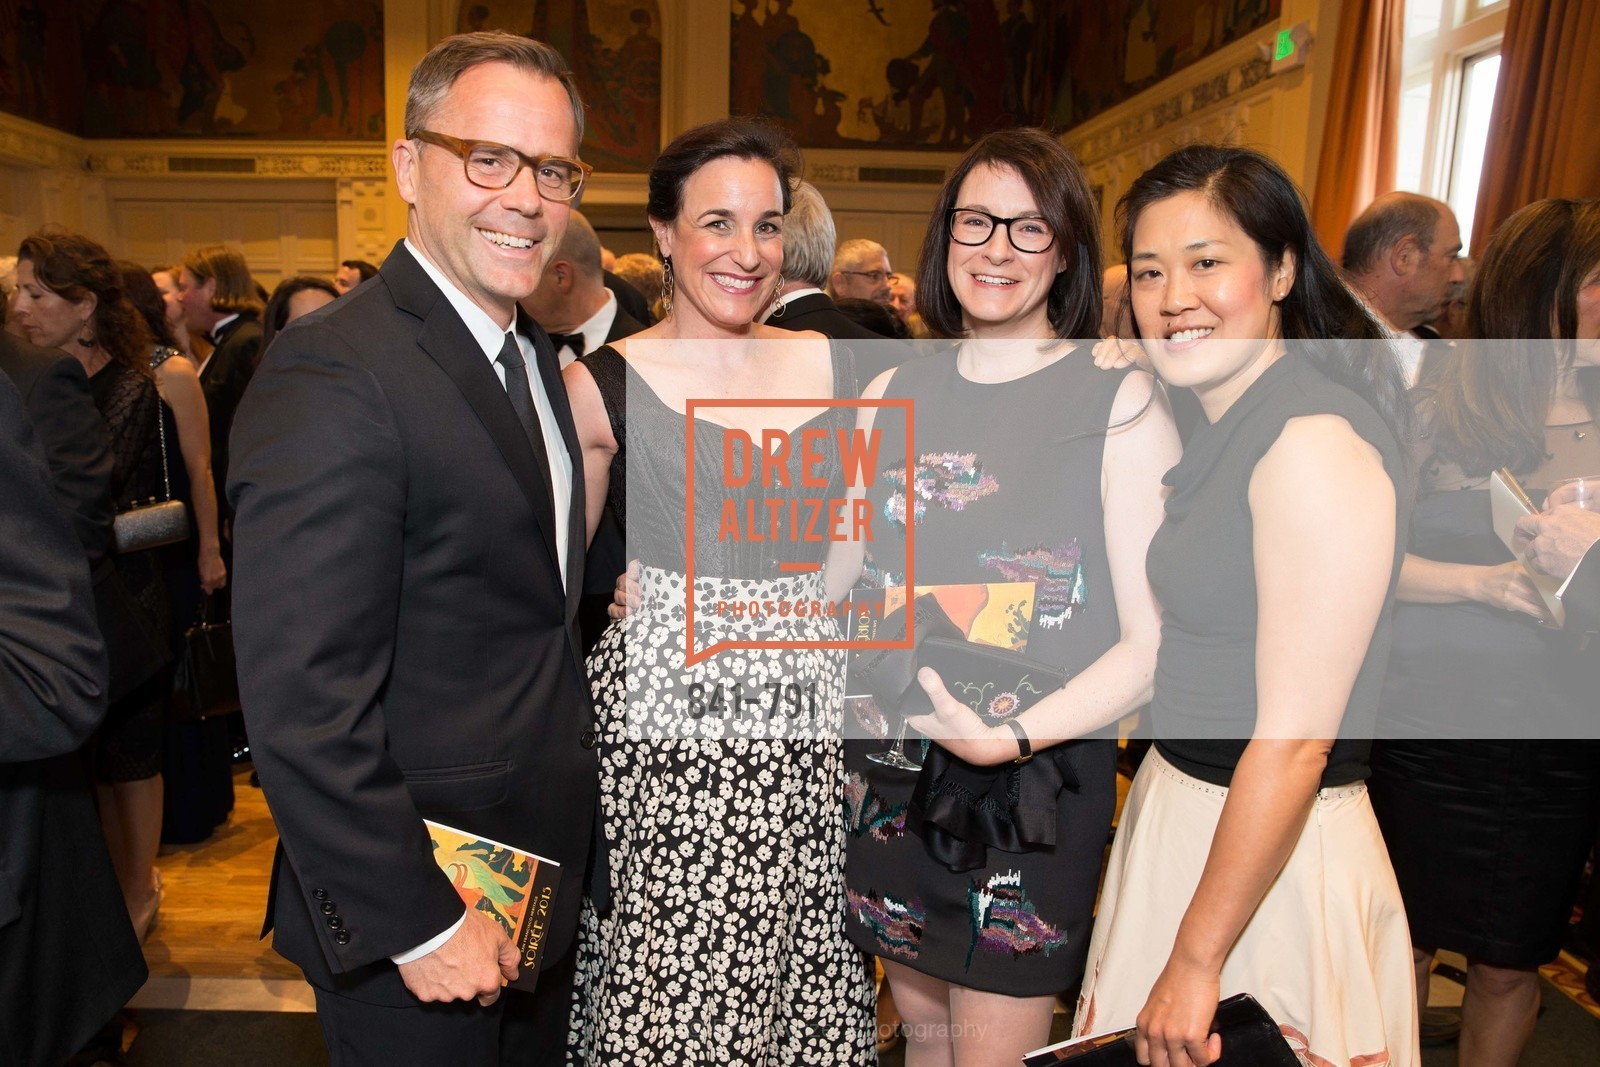 Courtney Pash, Tara Sullivan, Ming Yeung, SAN FRANCISCO HERITAGE Soiree 2015, US, April 19th, 2015,Drew Altizer, Drew Altizer Photography, full-service agency, private events, San Francisco photographer, photographer california